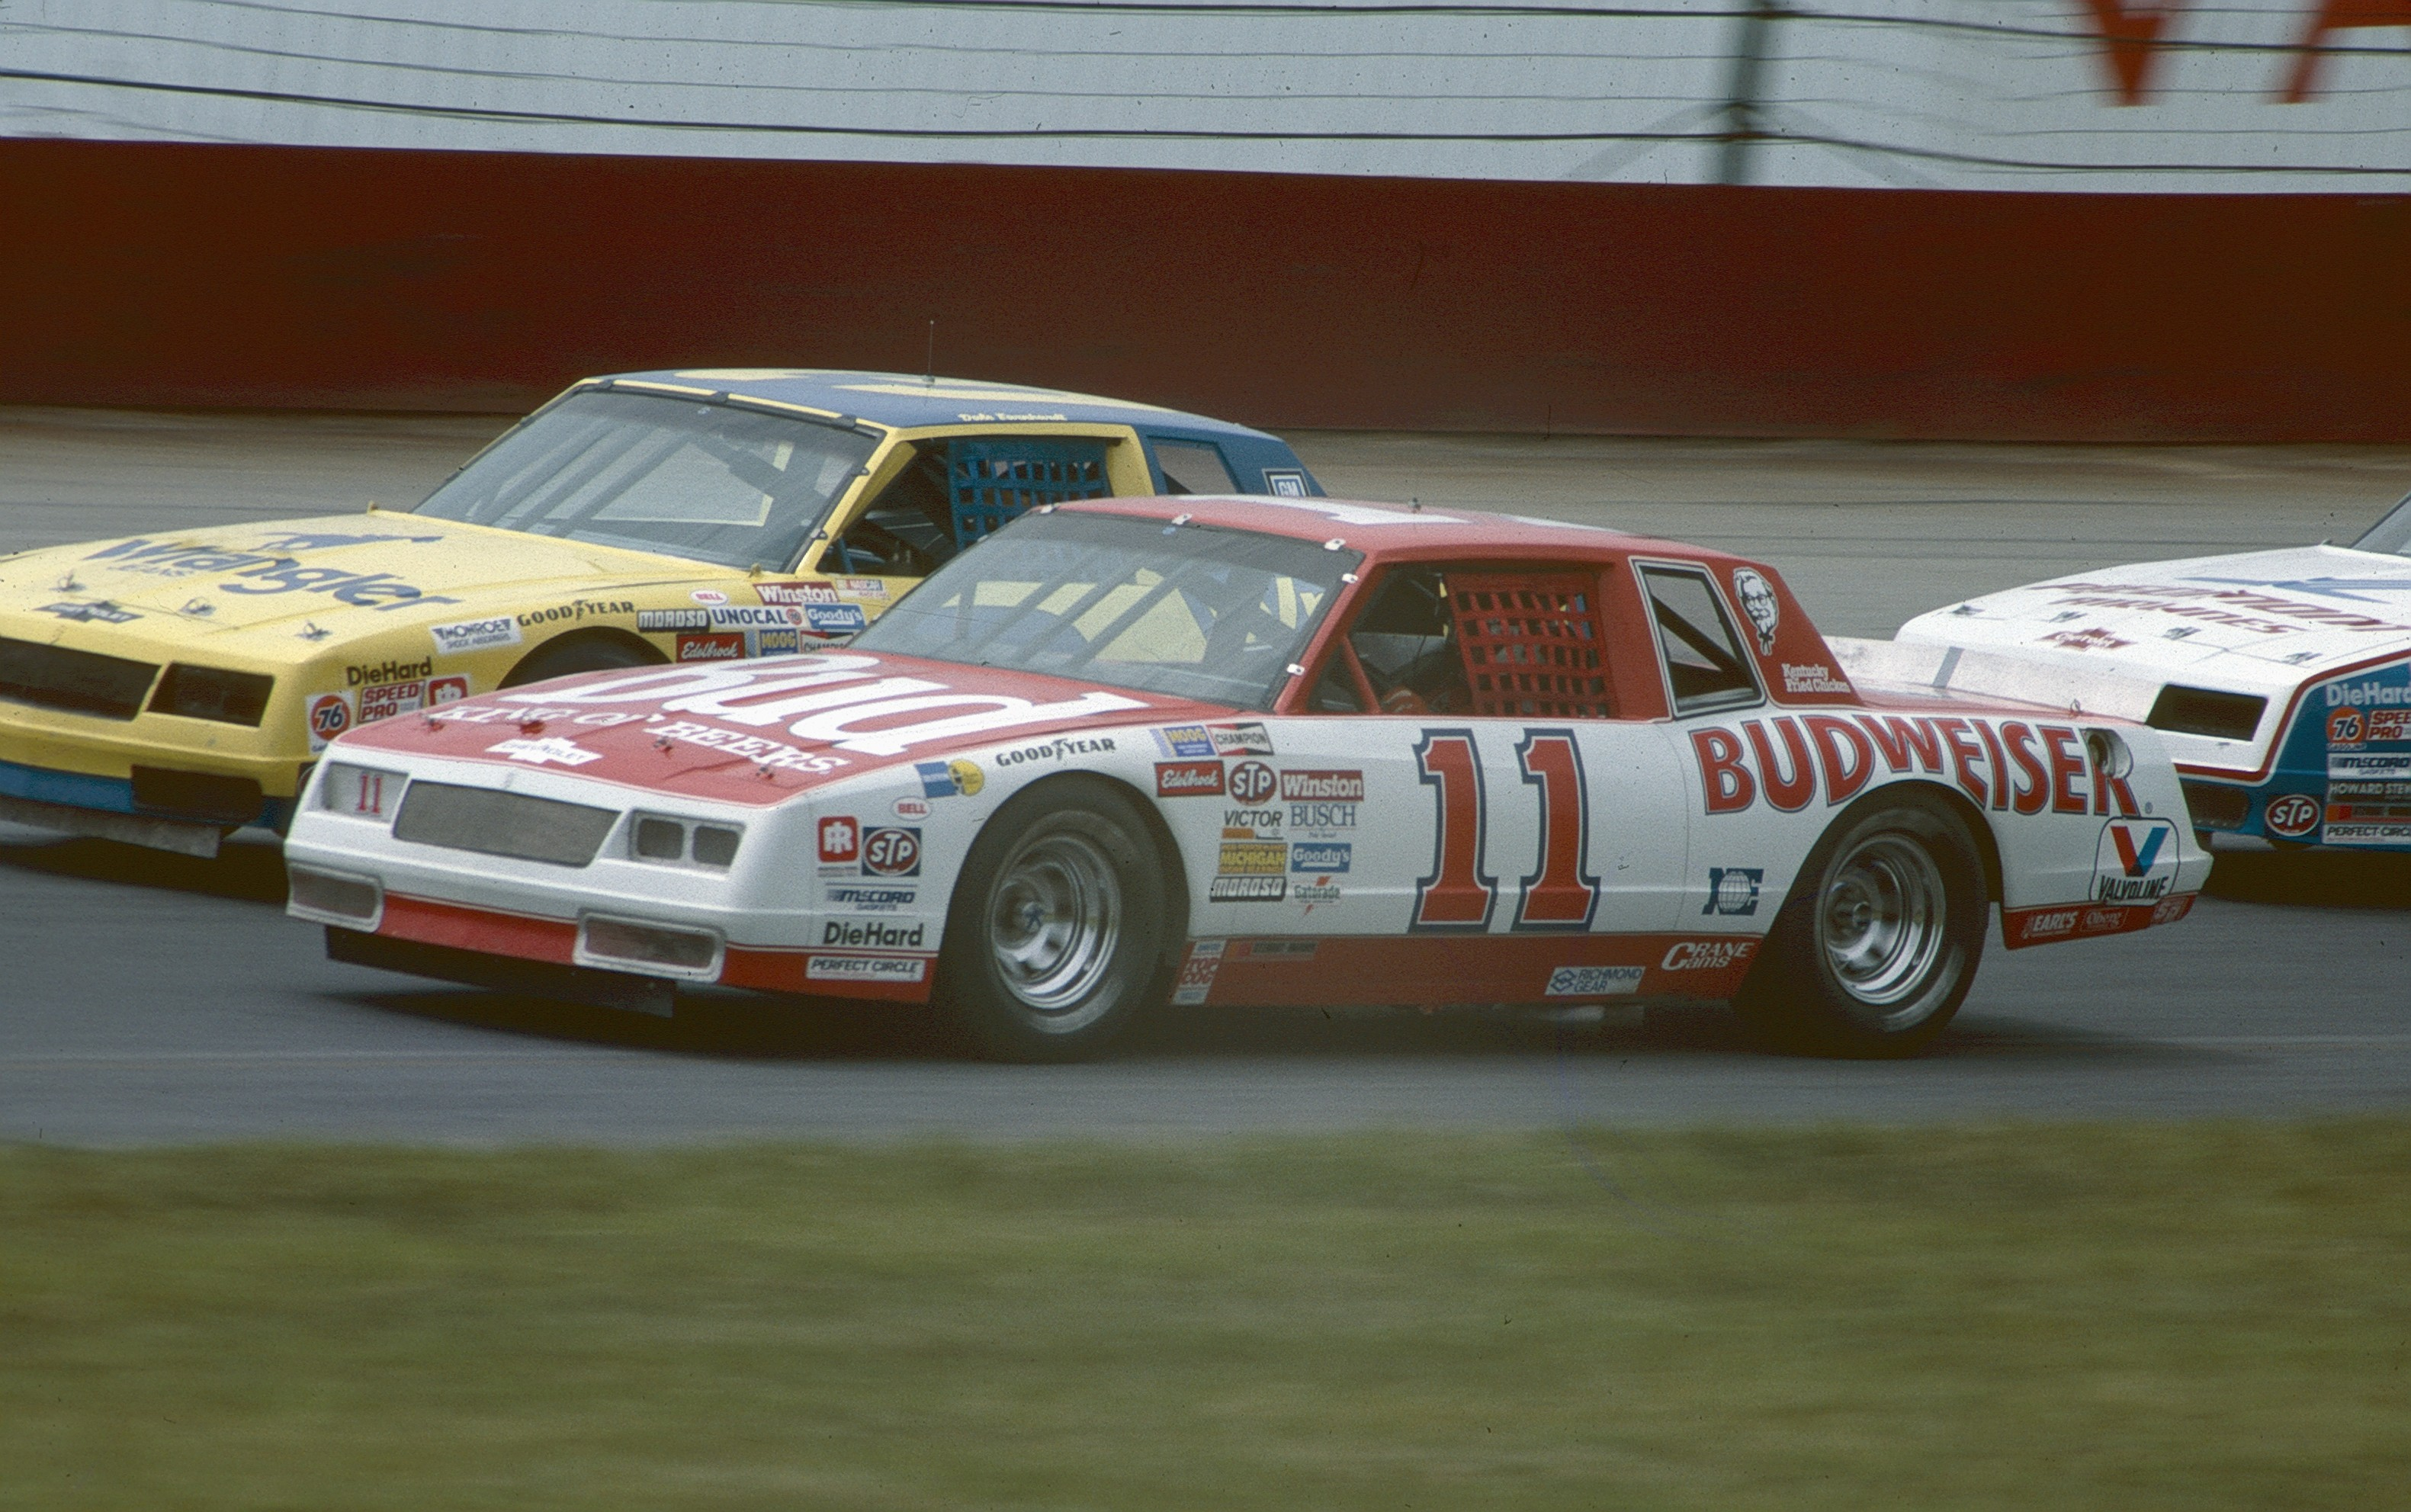 an analysis of seeing lightning and courage together in darrell waltrip race a nascar car (and future nascar pace car to see the local guys race quite a jim paschal bristol buddy baker darrell waltrip julian petty martinsville.